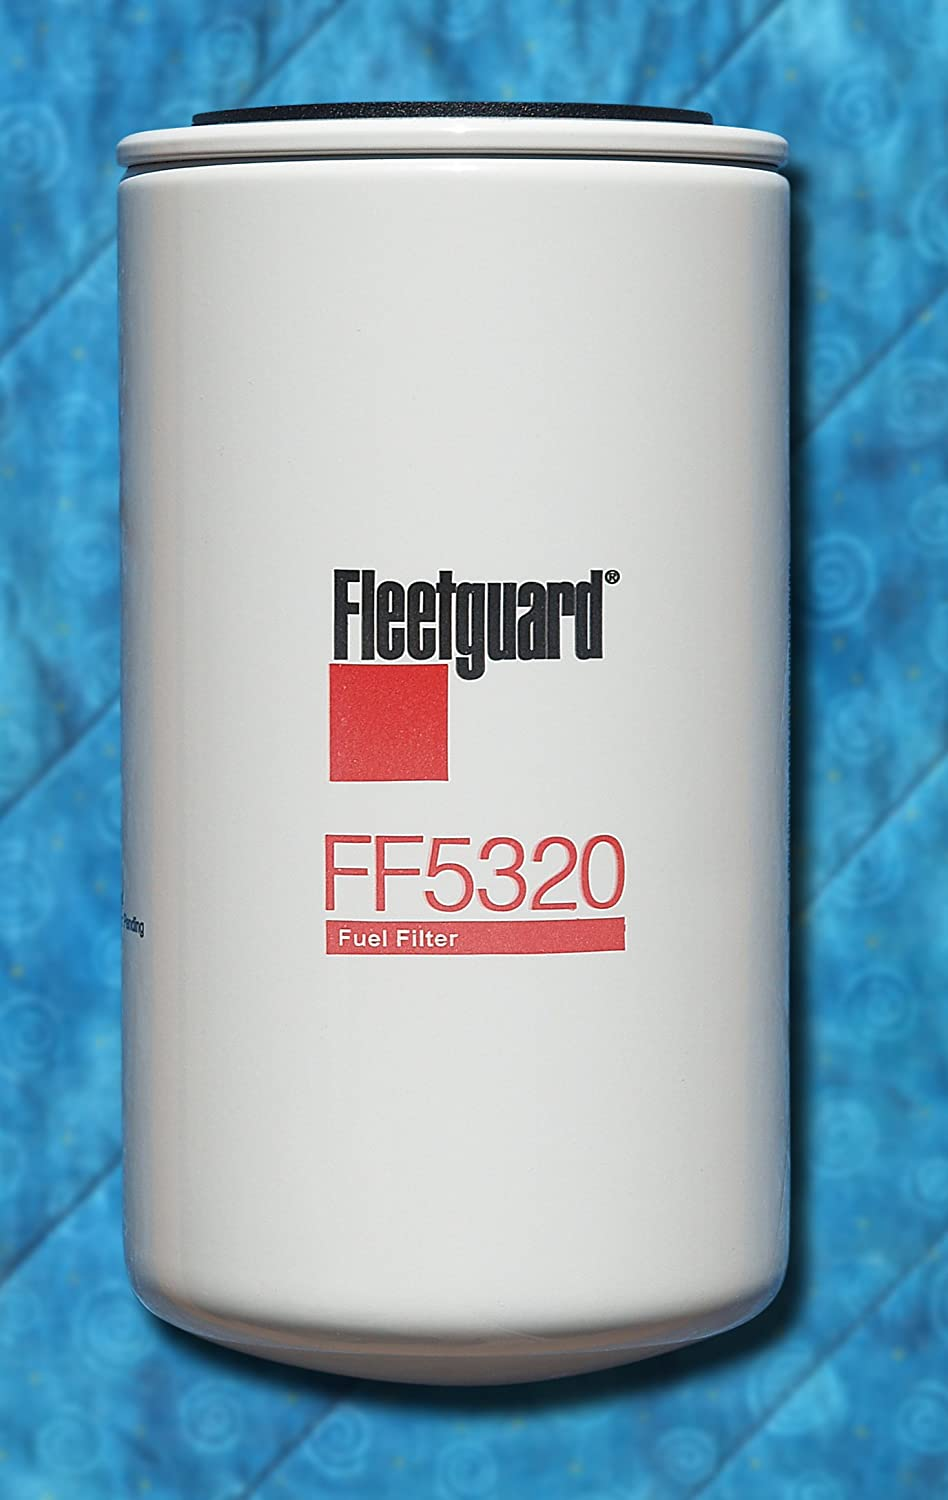 Fleetguard FF5320 Fuel, Spin-On Filter (Pack of 2) Cummins Filtration